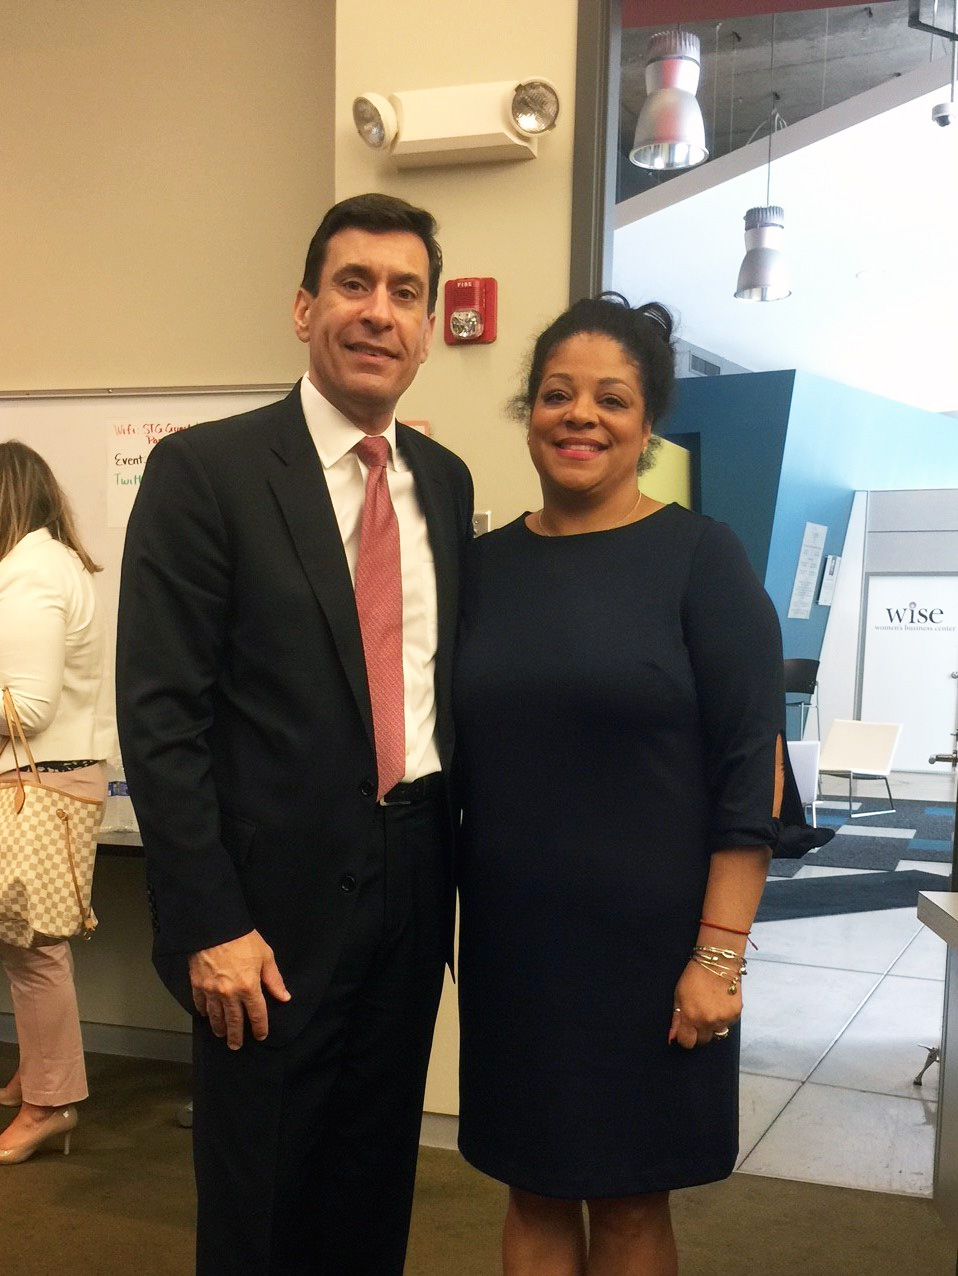 Chris Fisher with Assemblymember Pamela Hunter at 5G event in Syracuse